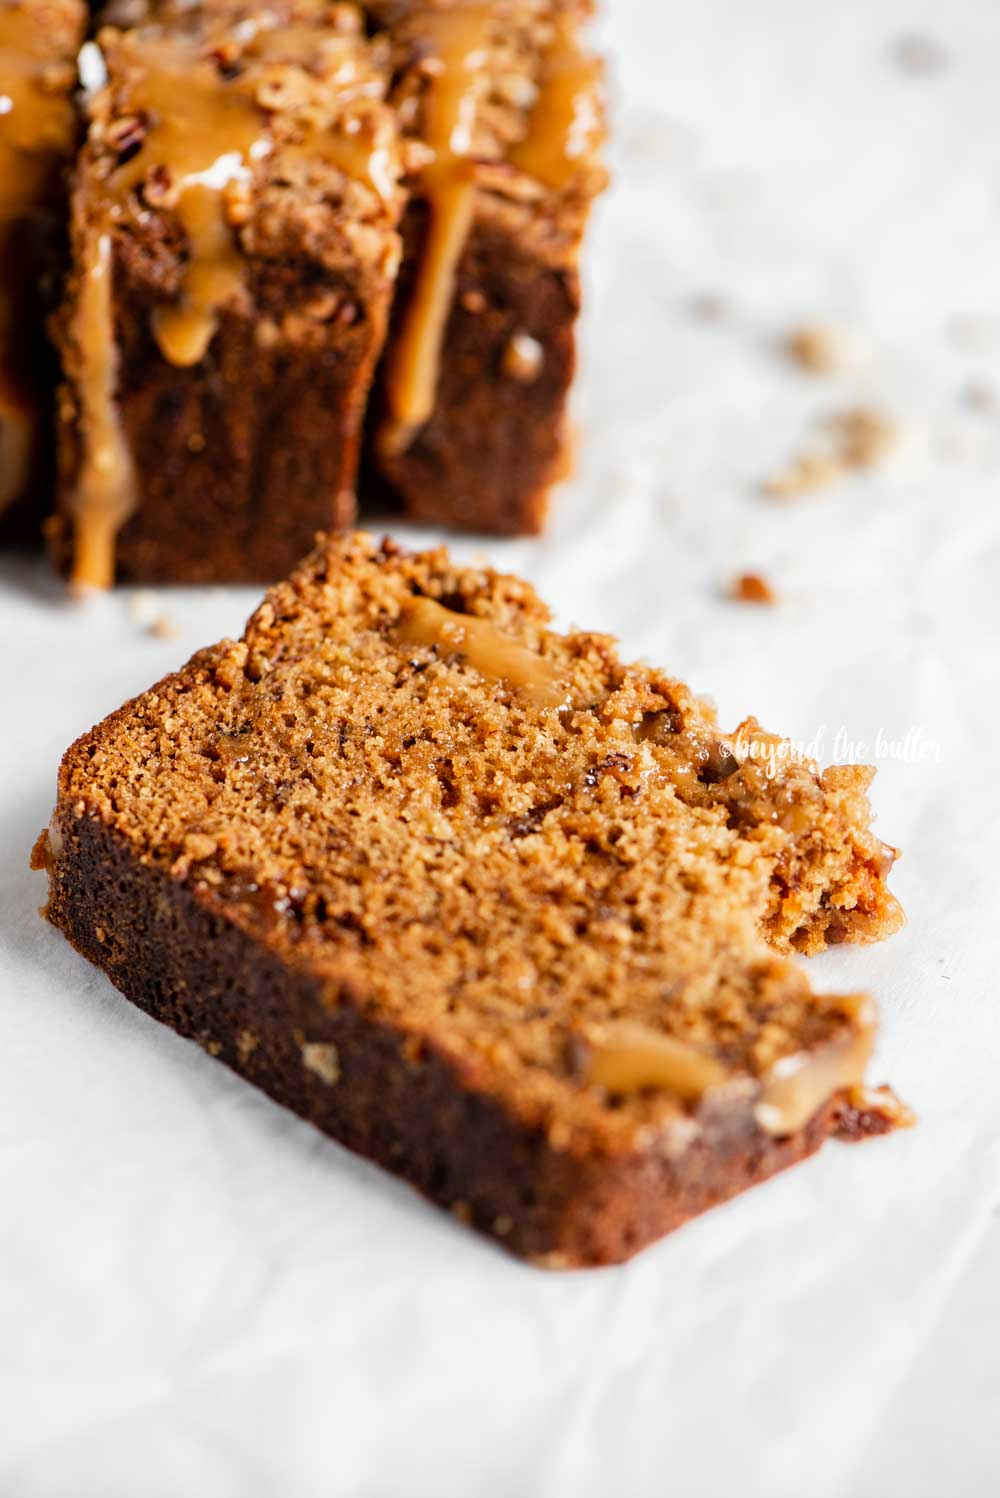 Angled image of slices of salted caramel banana nut bread on parchment paper with a bread knife next to it   All Images © Beyond the Butter™